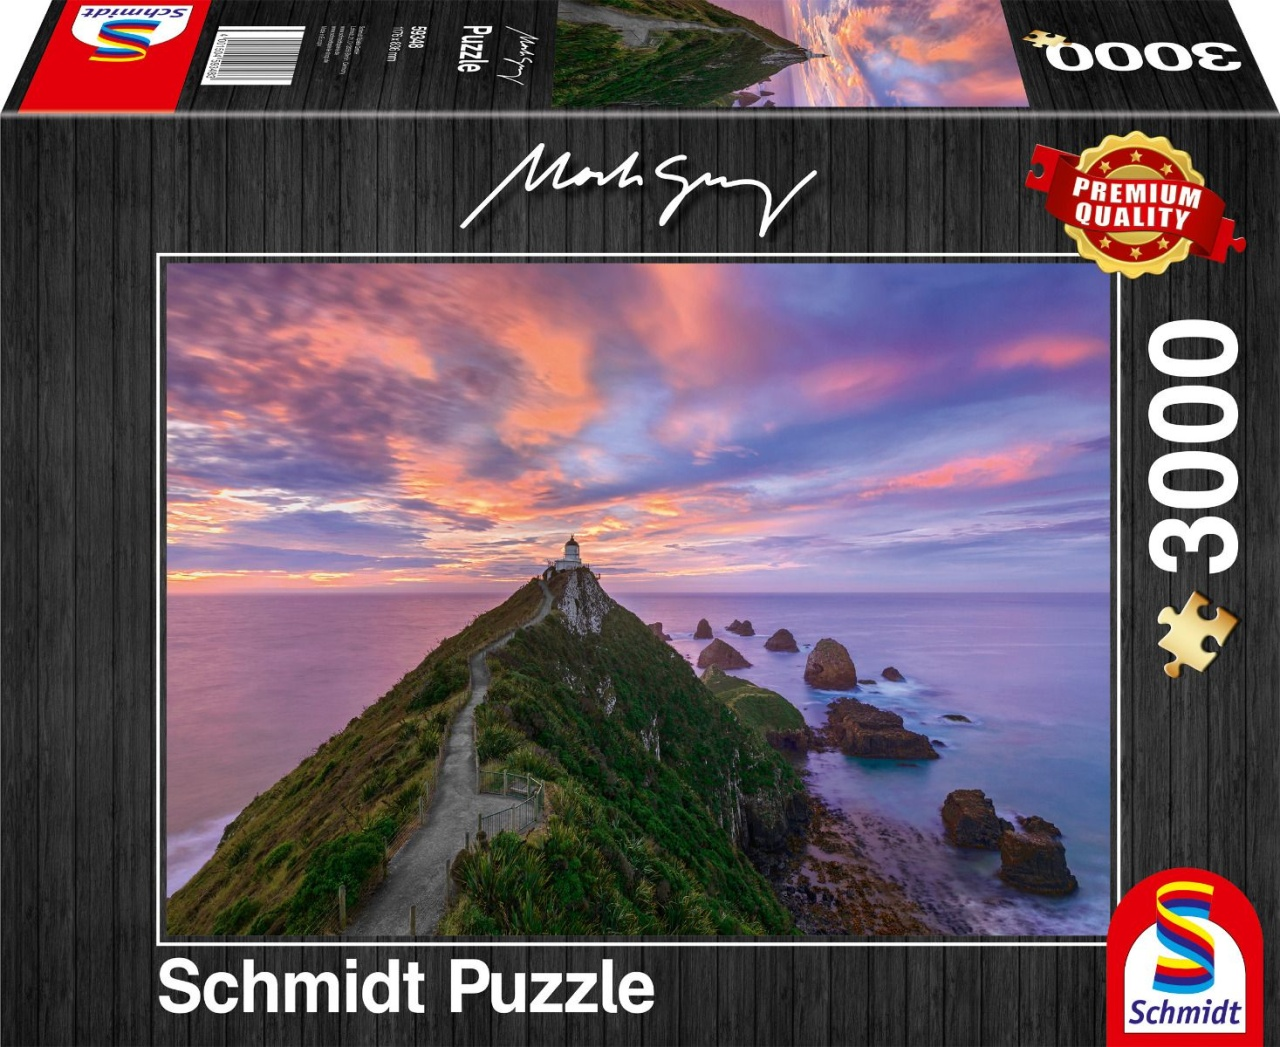 Schmidt Spiele Puzzle Mark Gray Nugget Point Lighthouse